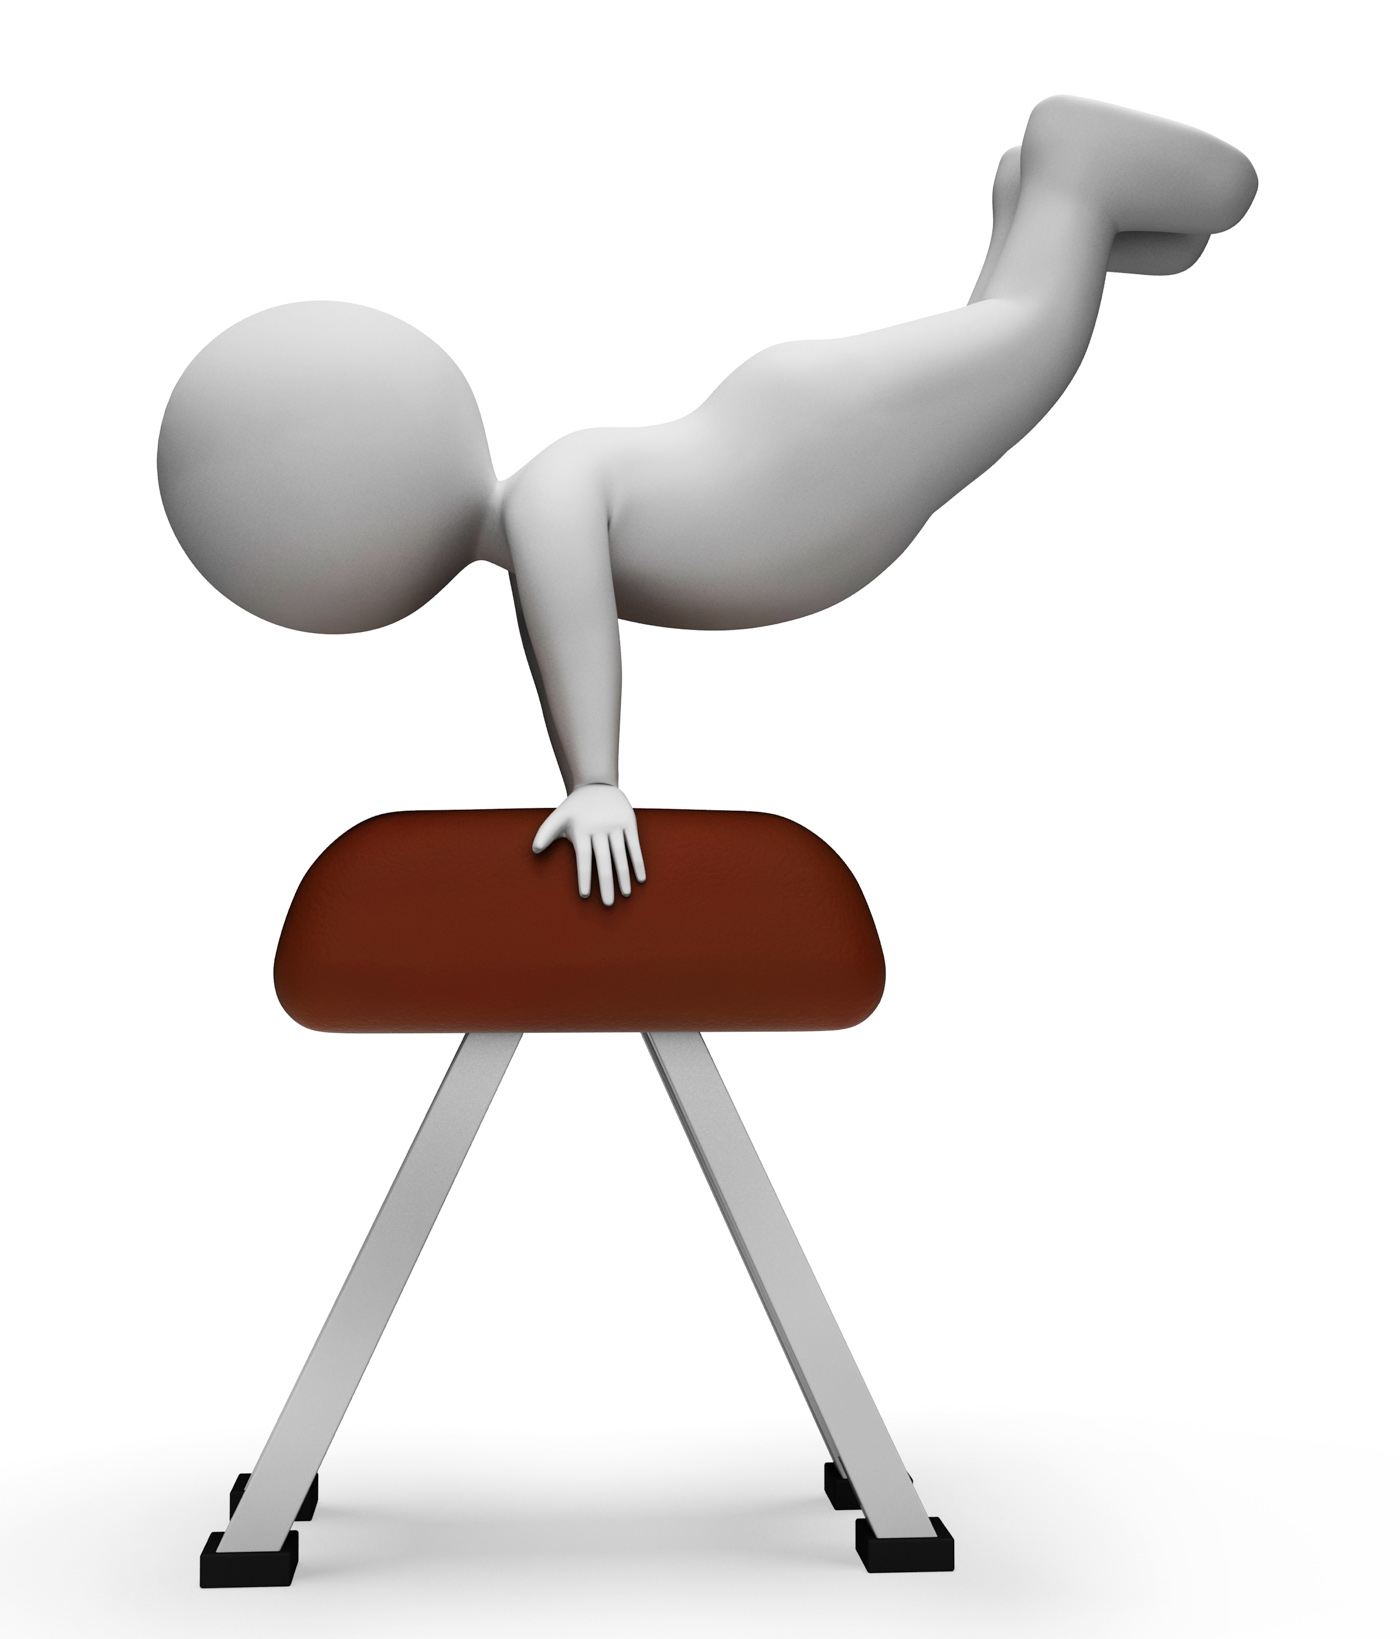 Pommel Horse Means Physical Activity And Apparatus 3d Rendering, 3drendering, Physicalactivity, Man, Muscle, HQ Photo